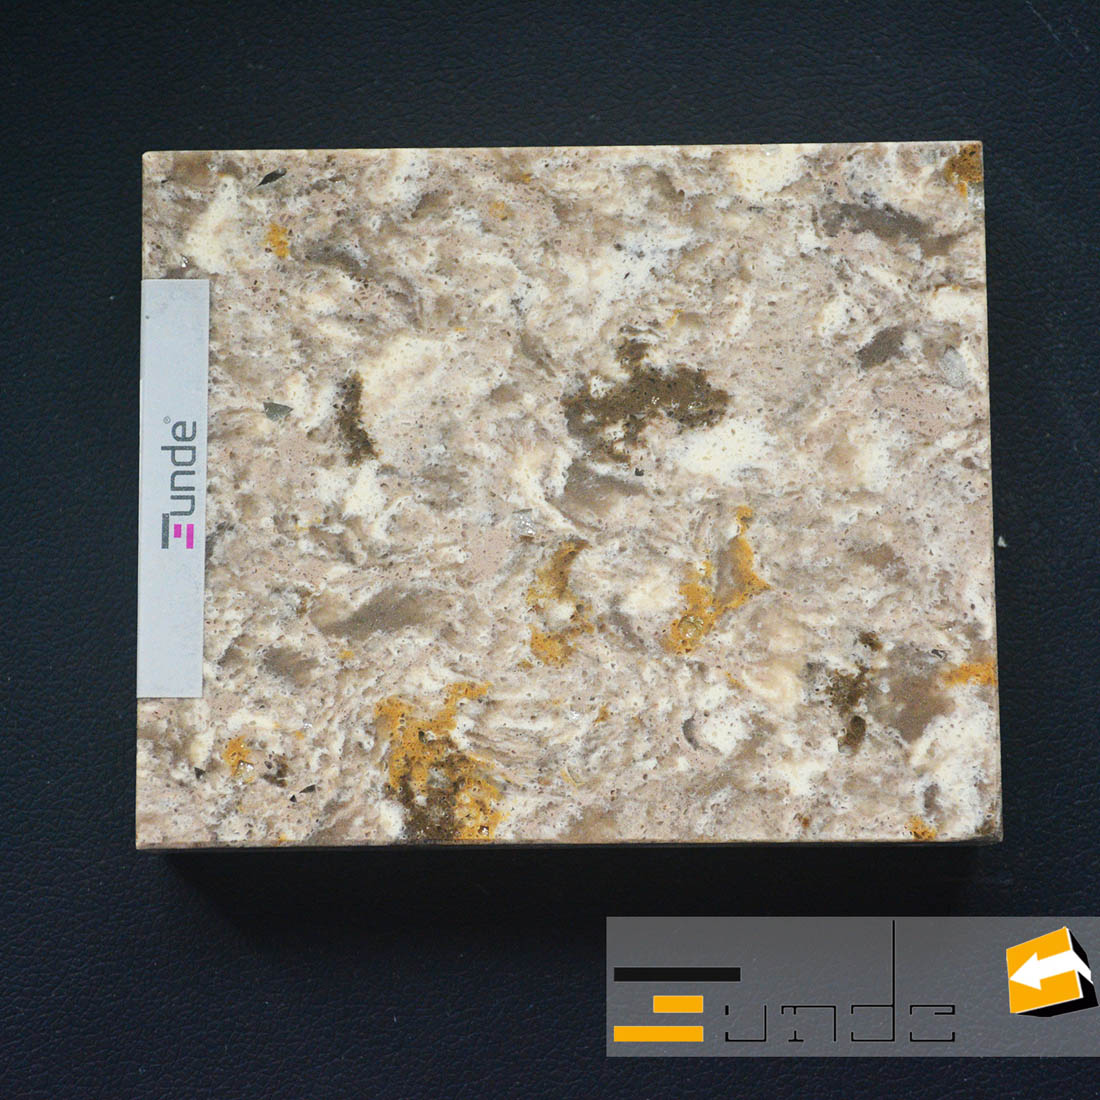 calacatta yellow quartz stone sample jd418-1